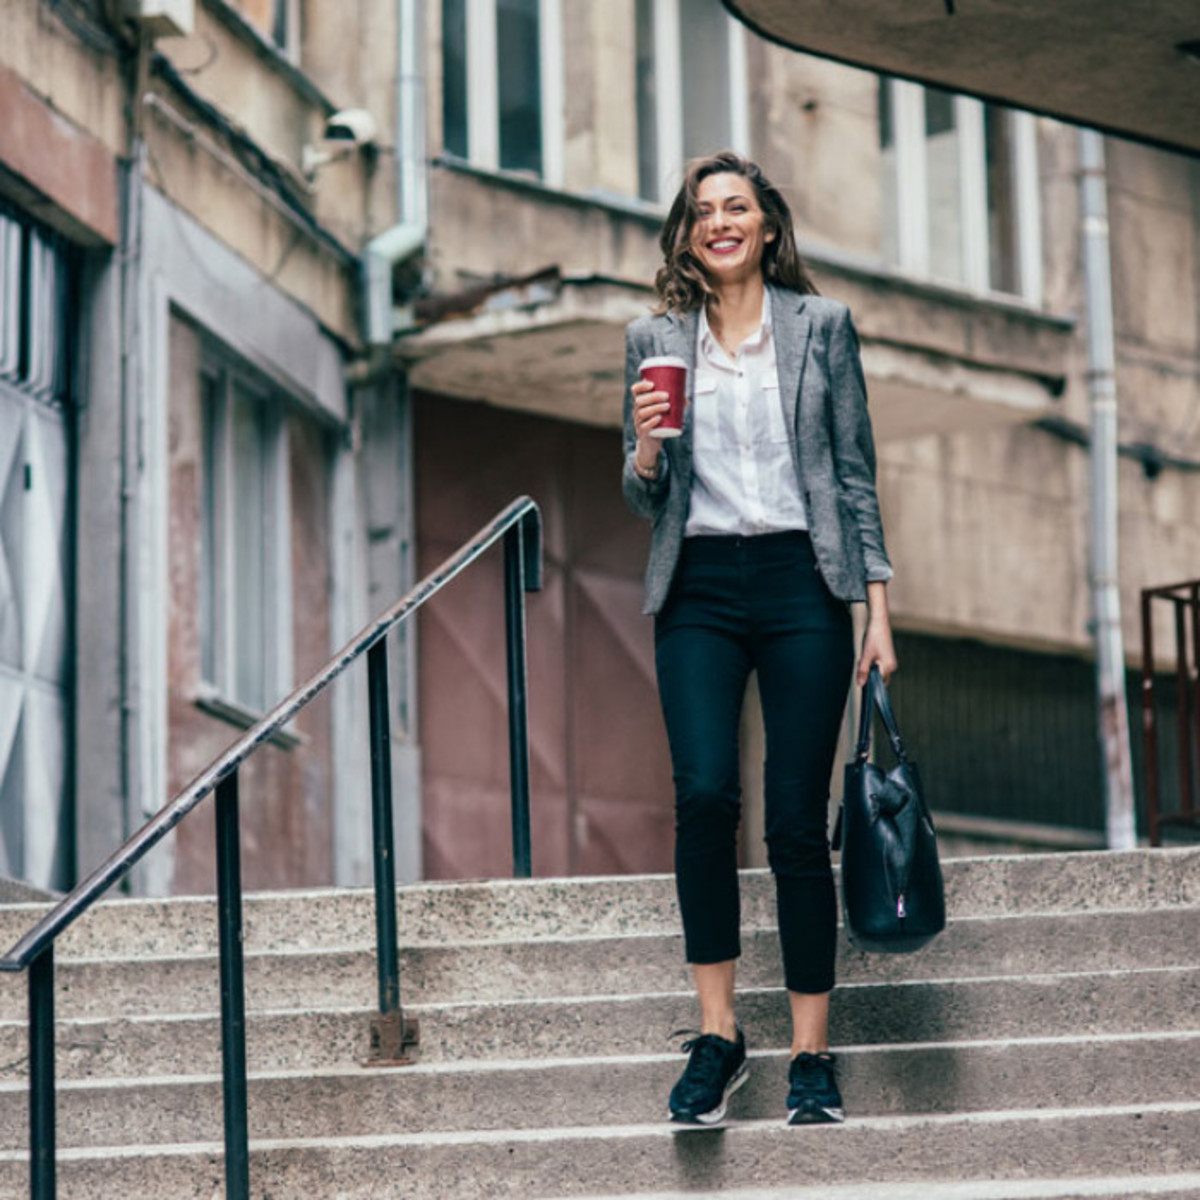 Walking is a great way to get to potential jobs that doesn't cost any money, and it's great exercise!